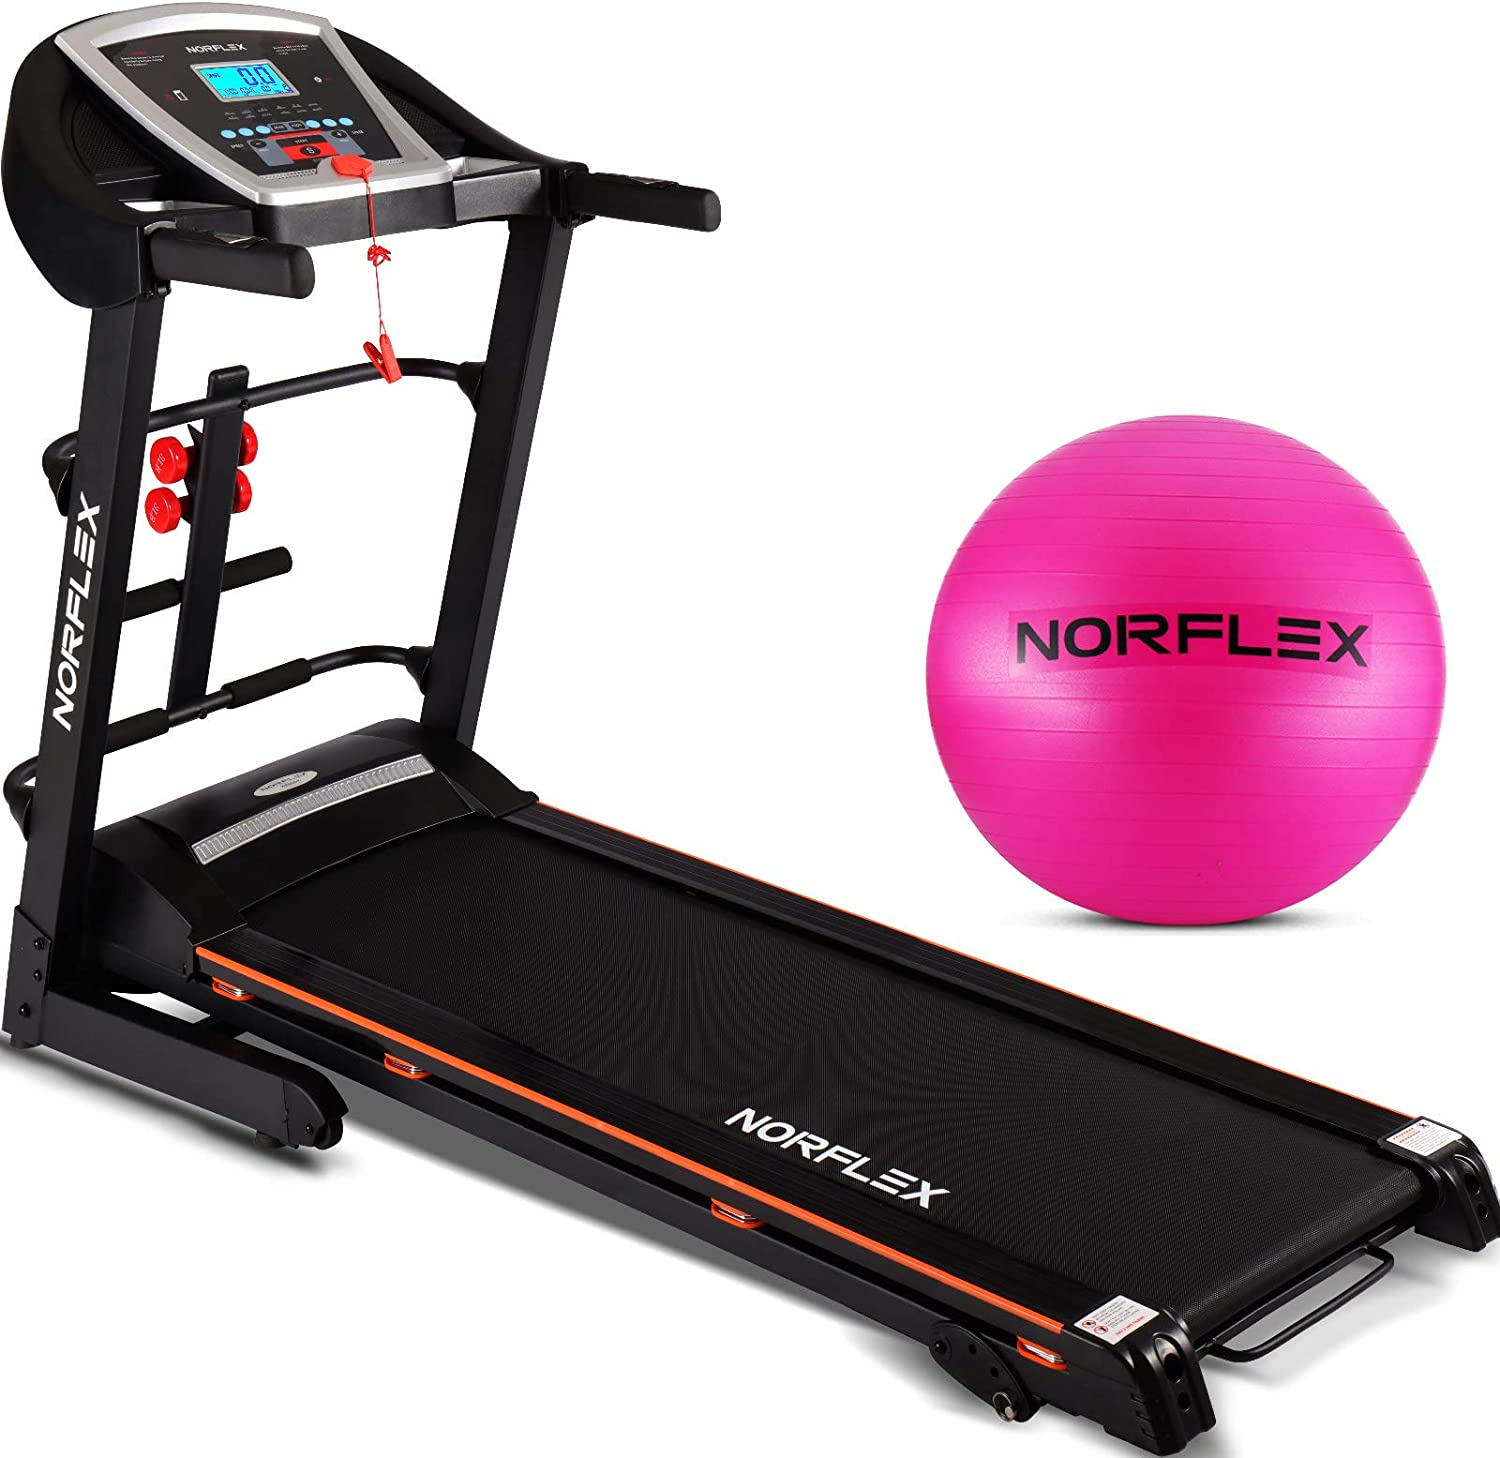 XR600E Self Powered Treadmill – Fordable Walking Desk – True Fitness Foldup Treadmill – 3 Level Incline 1.5 CHP Motor Power – Treadmill Safety Key for Health Rider – MP3 Connection by Norflex